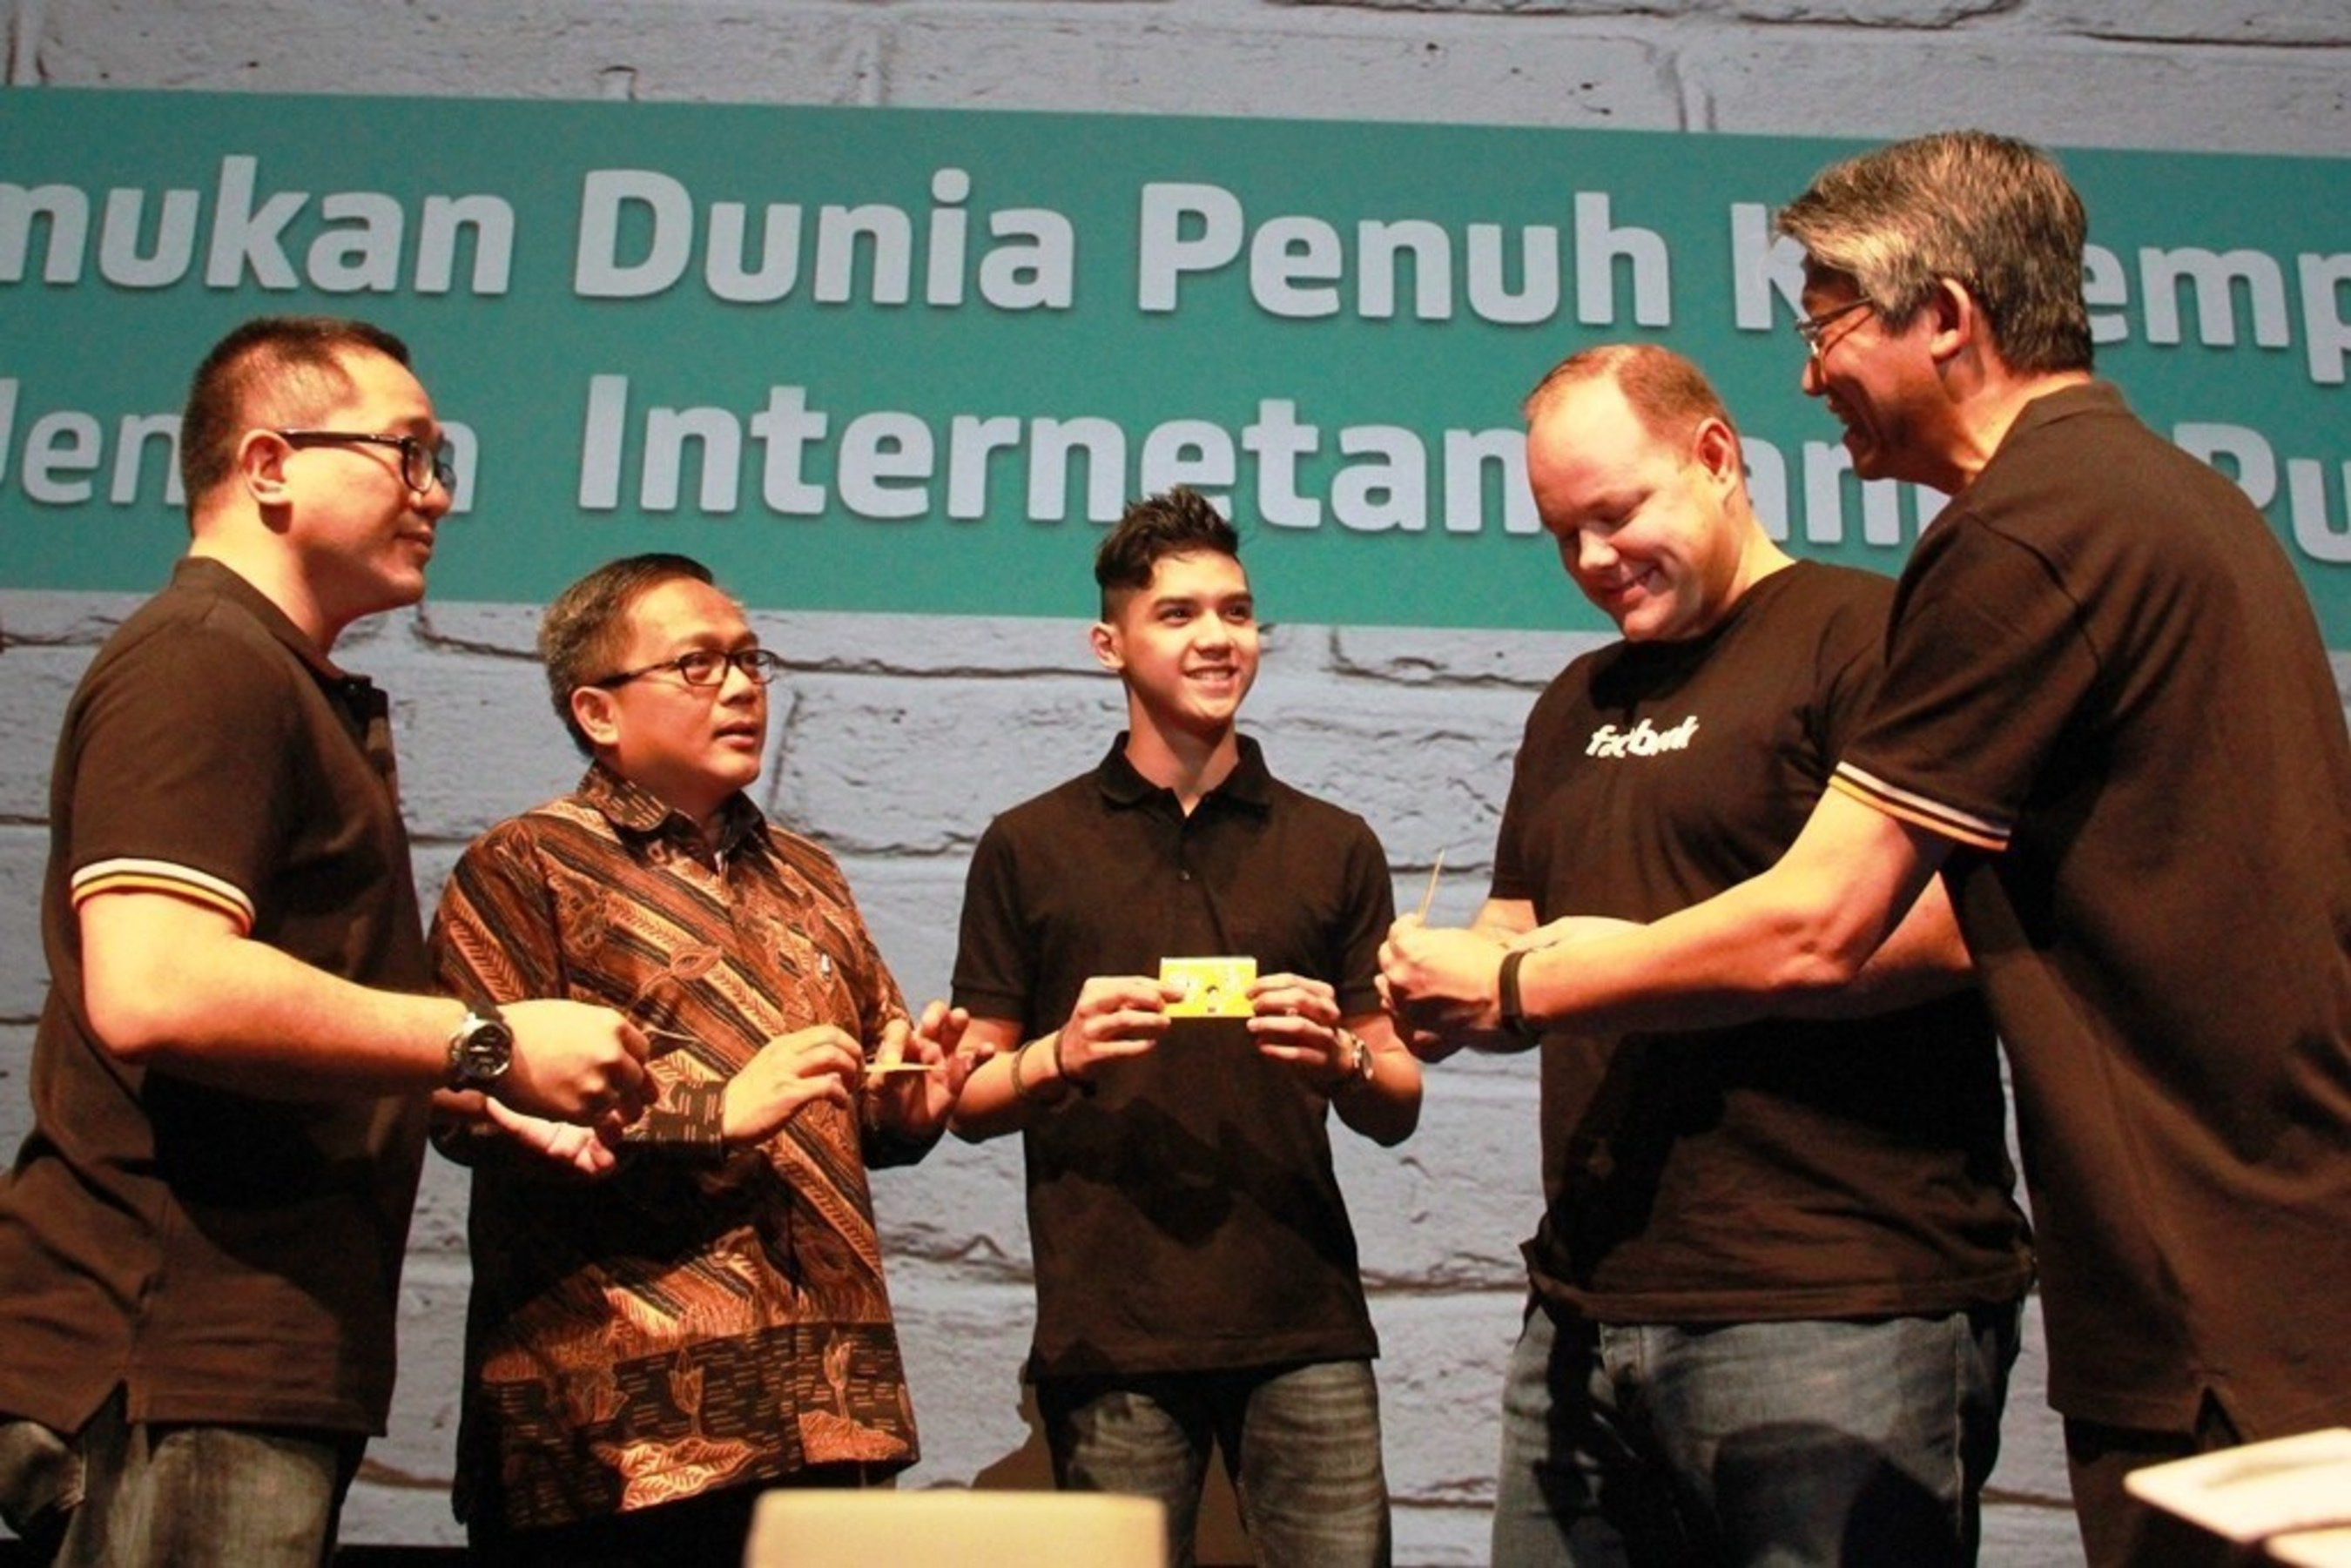 Ooredoo's Indosat and Facebook Launch Internet.org in Indonesia